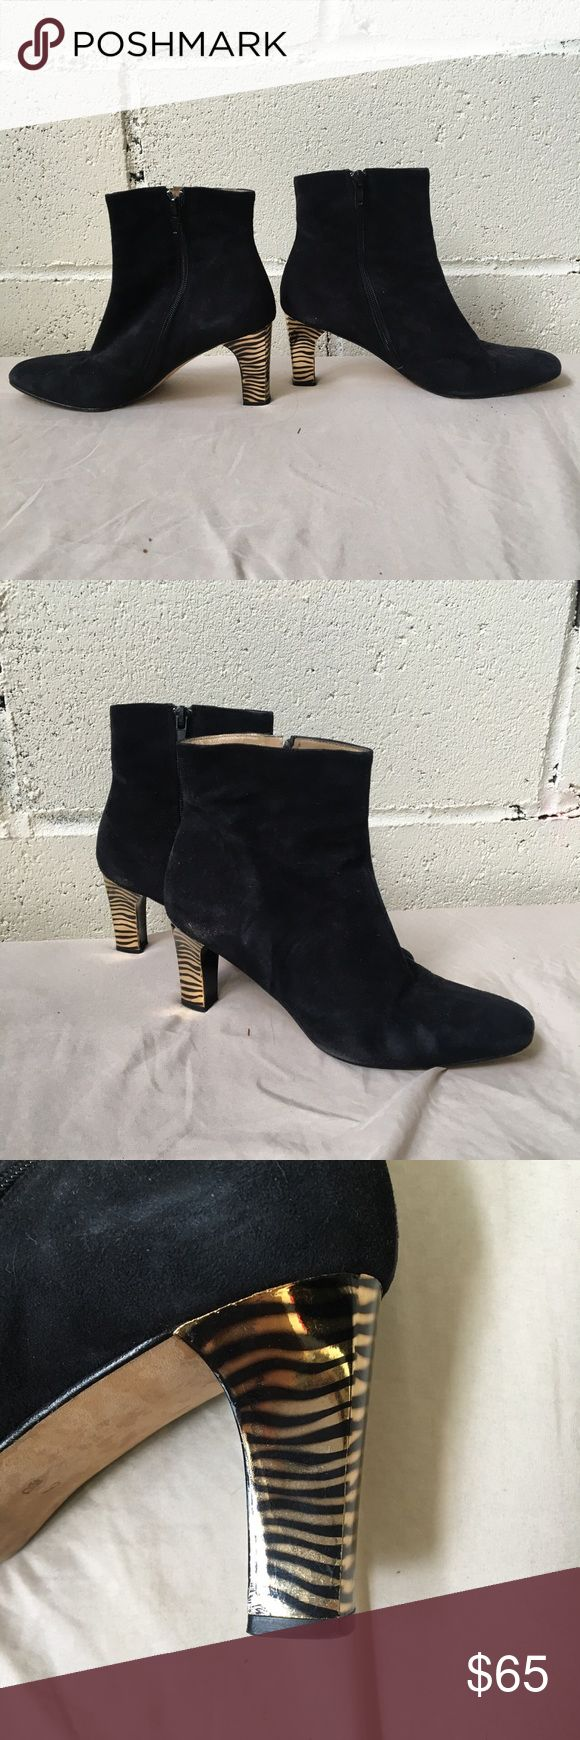 Vintage Gold Zebra Heeled Boots Soft leather suede boot with gold zebra detailing on heel. Excellent condition! Shoes Ankle Boots & Booties